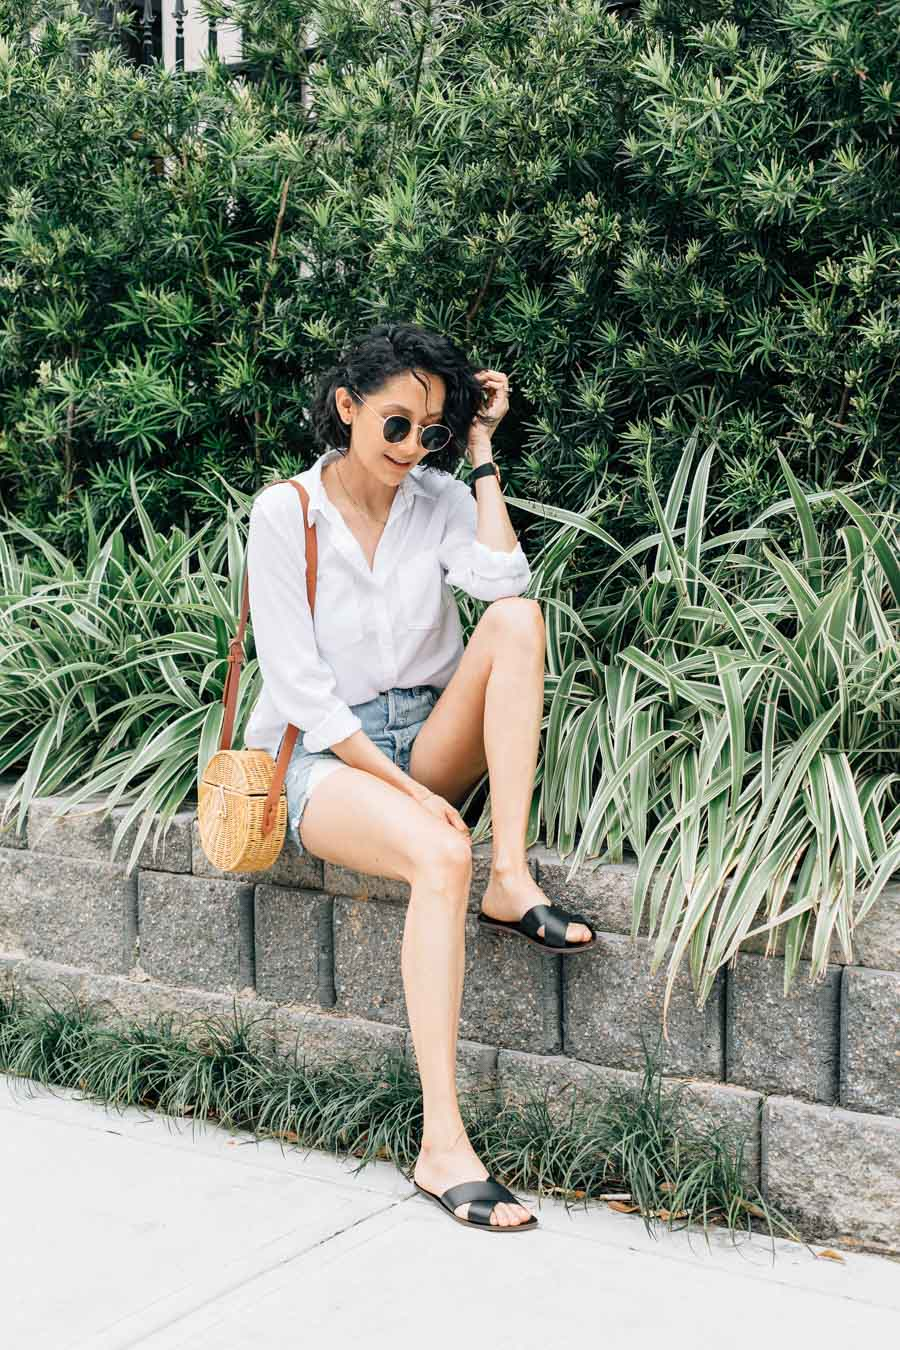 Lilly Beltran in a classic summer look with denim cutoffs, white button up shirt and round wicker bag.